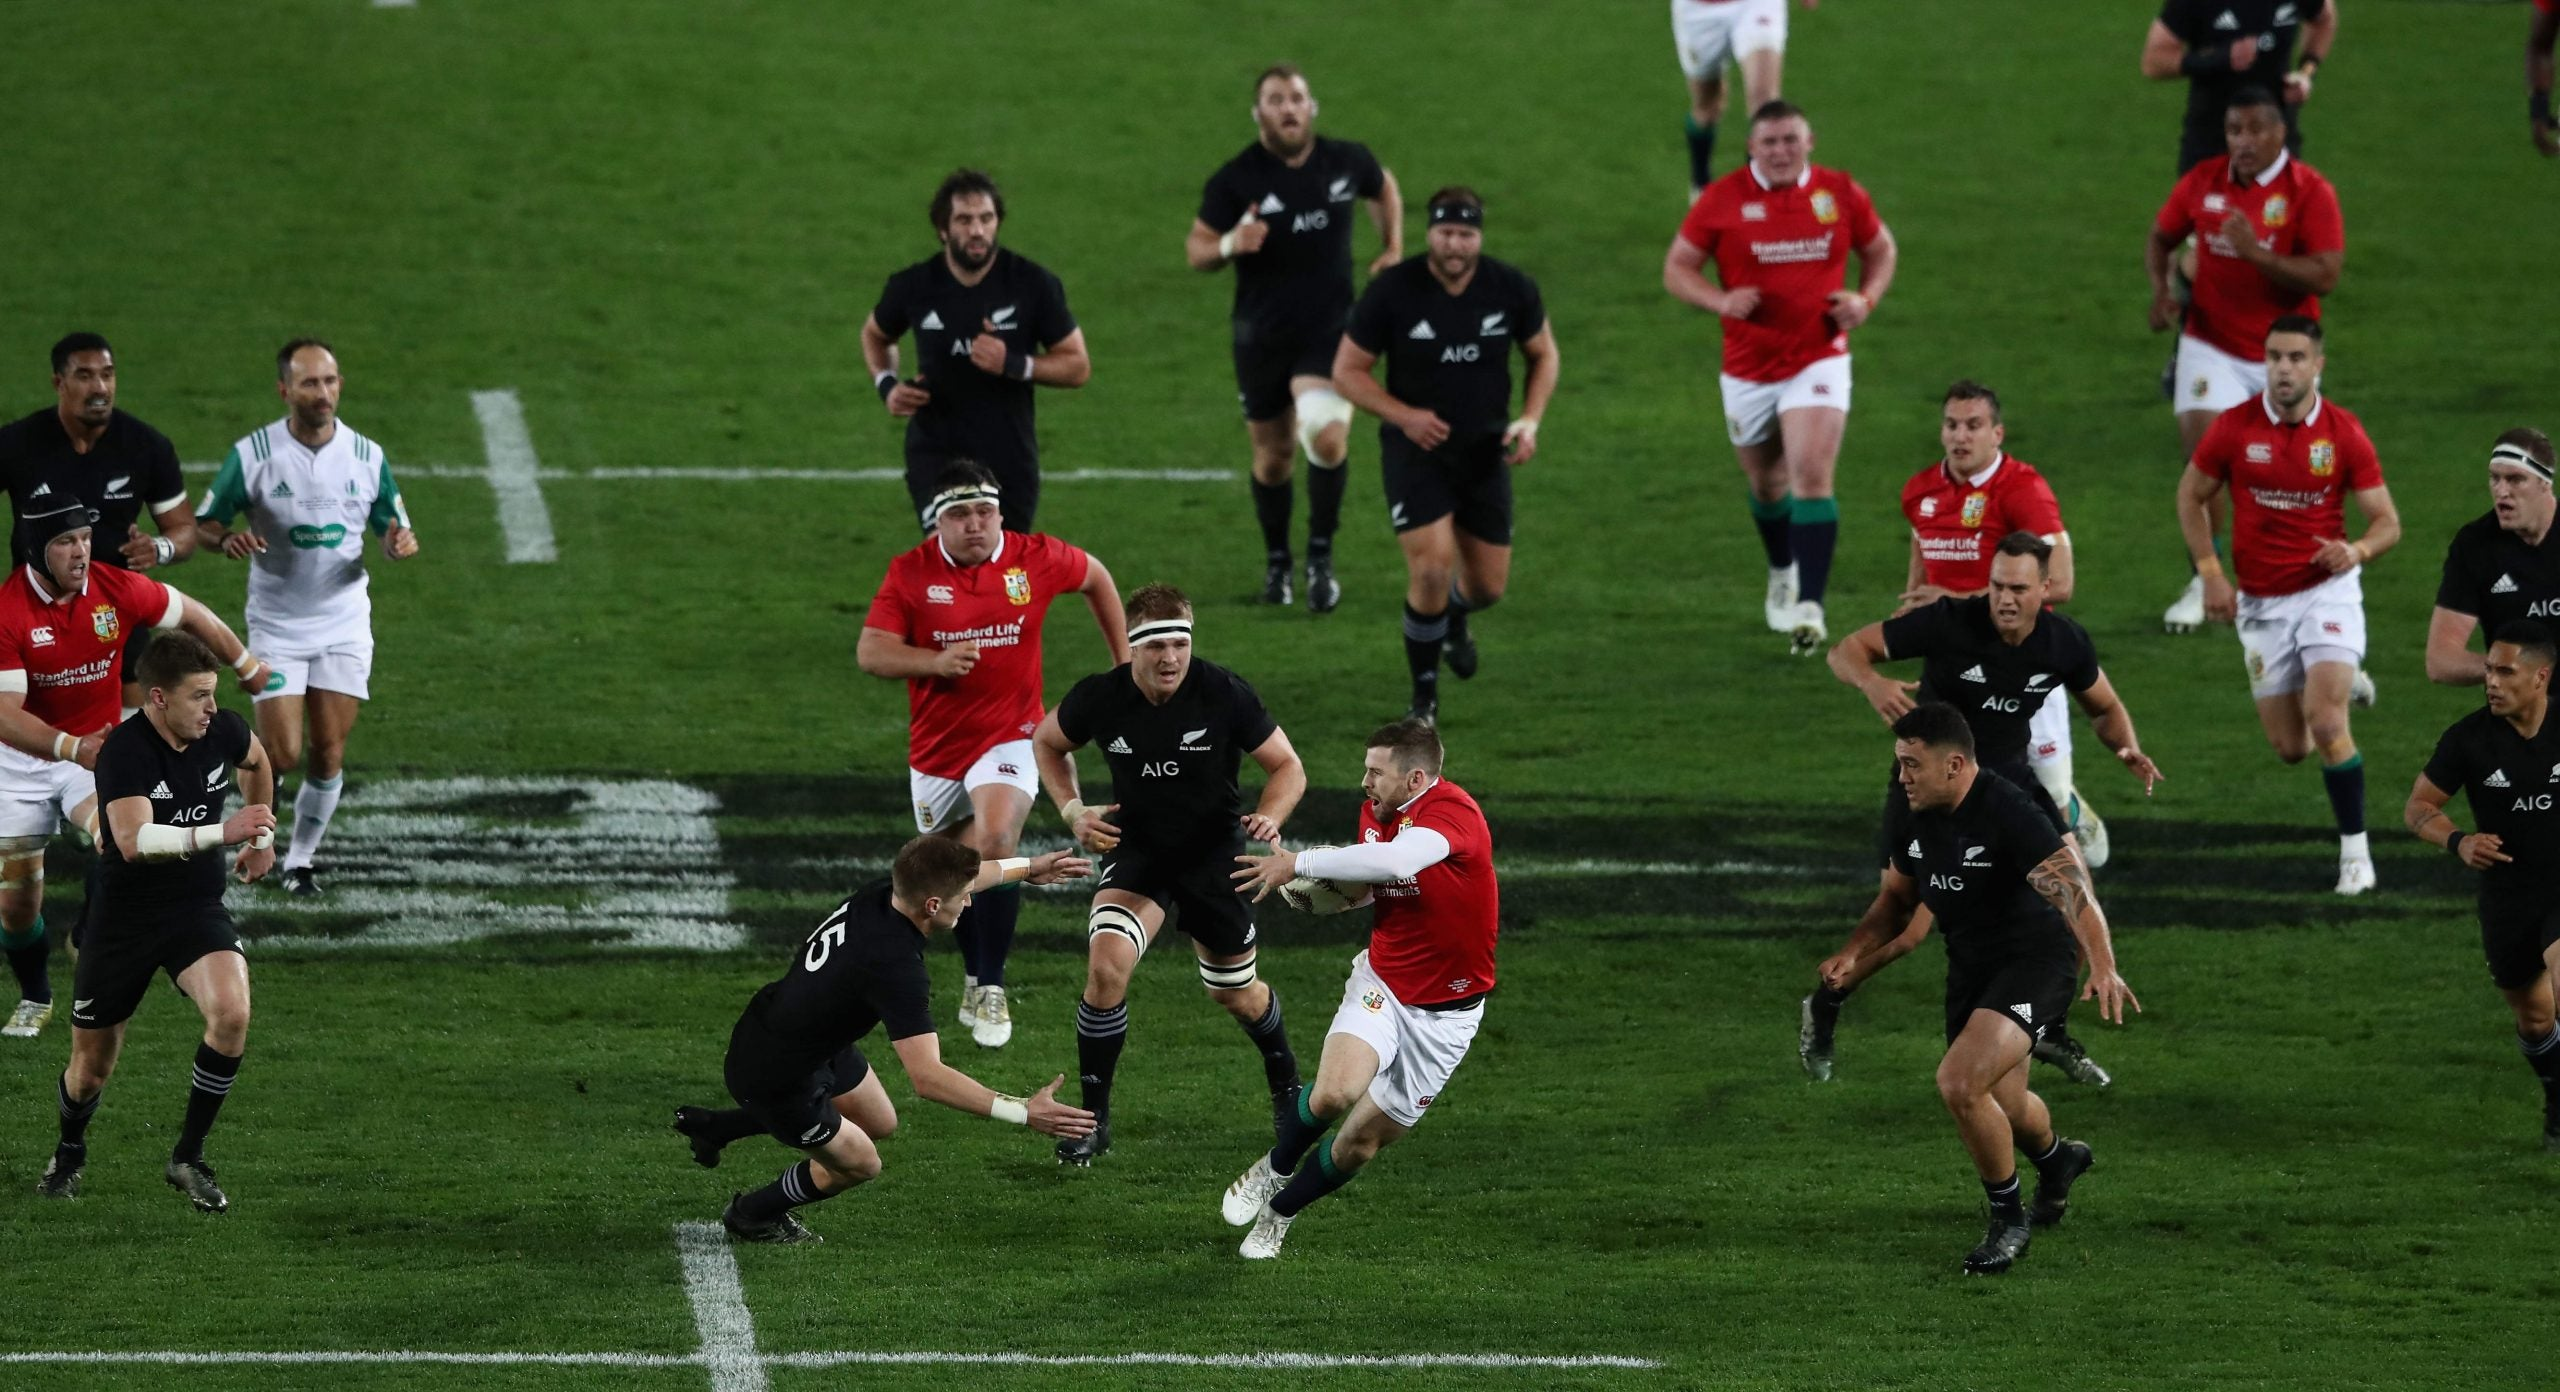 What I learned about justice while watching the All Blacks take on the Lions